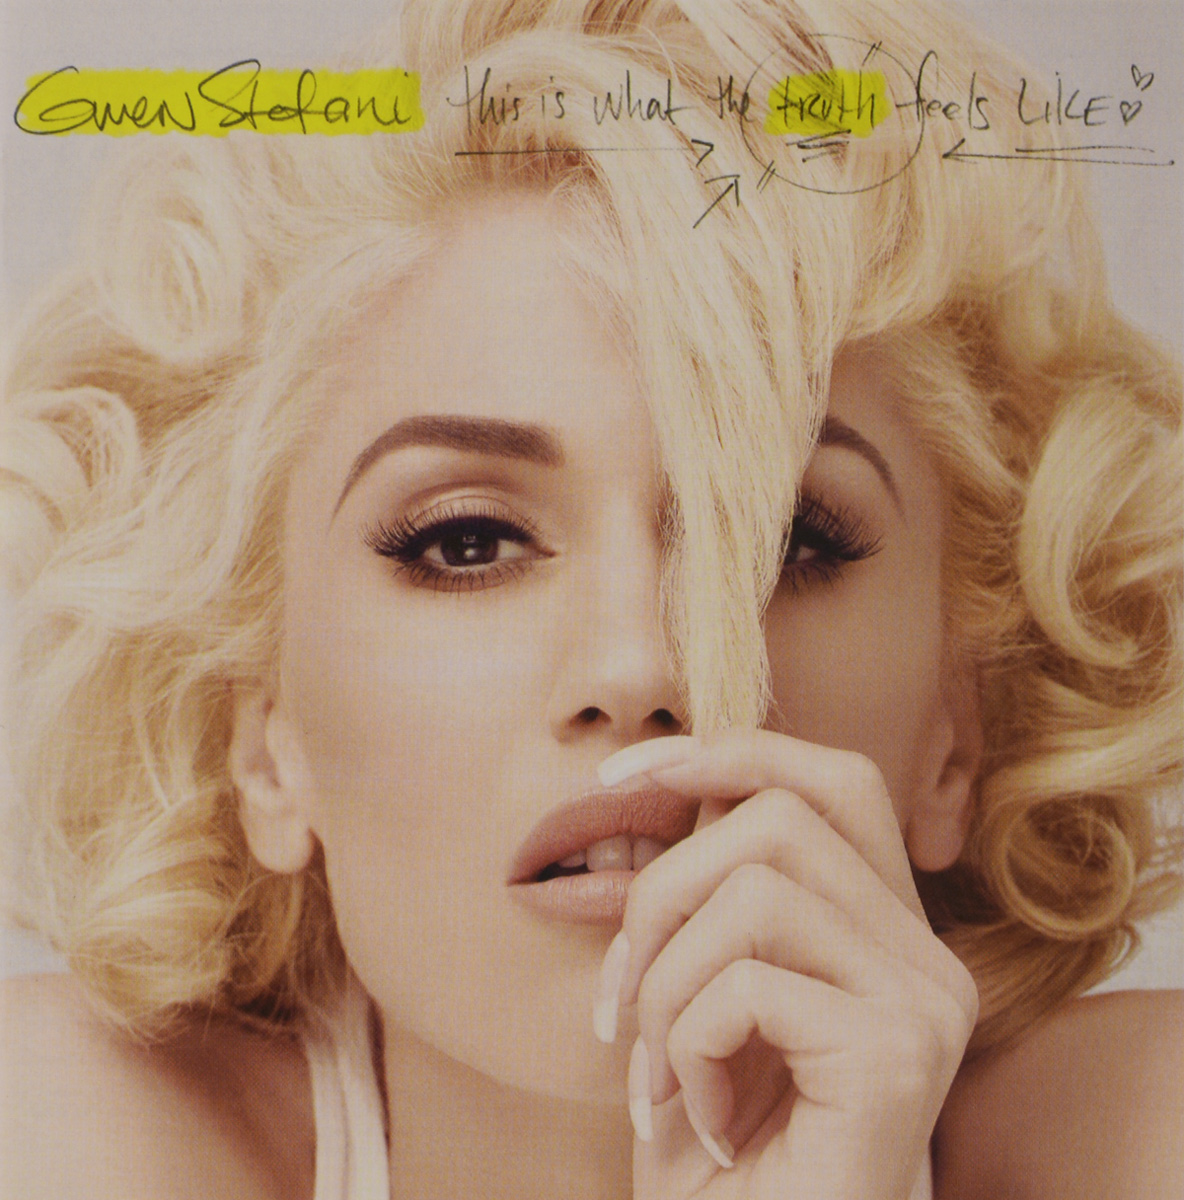 Гвен Стефани Gwen Stefani. This Is What The Truth Feels Like цены онлайн